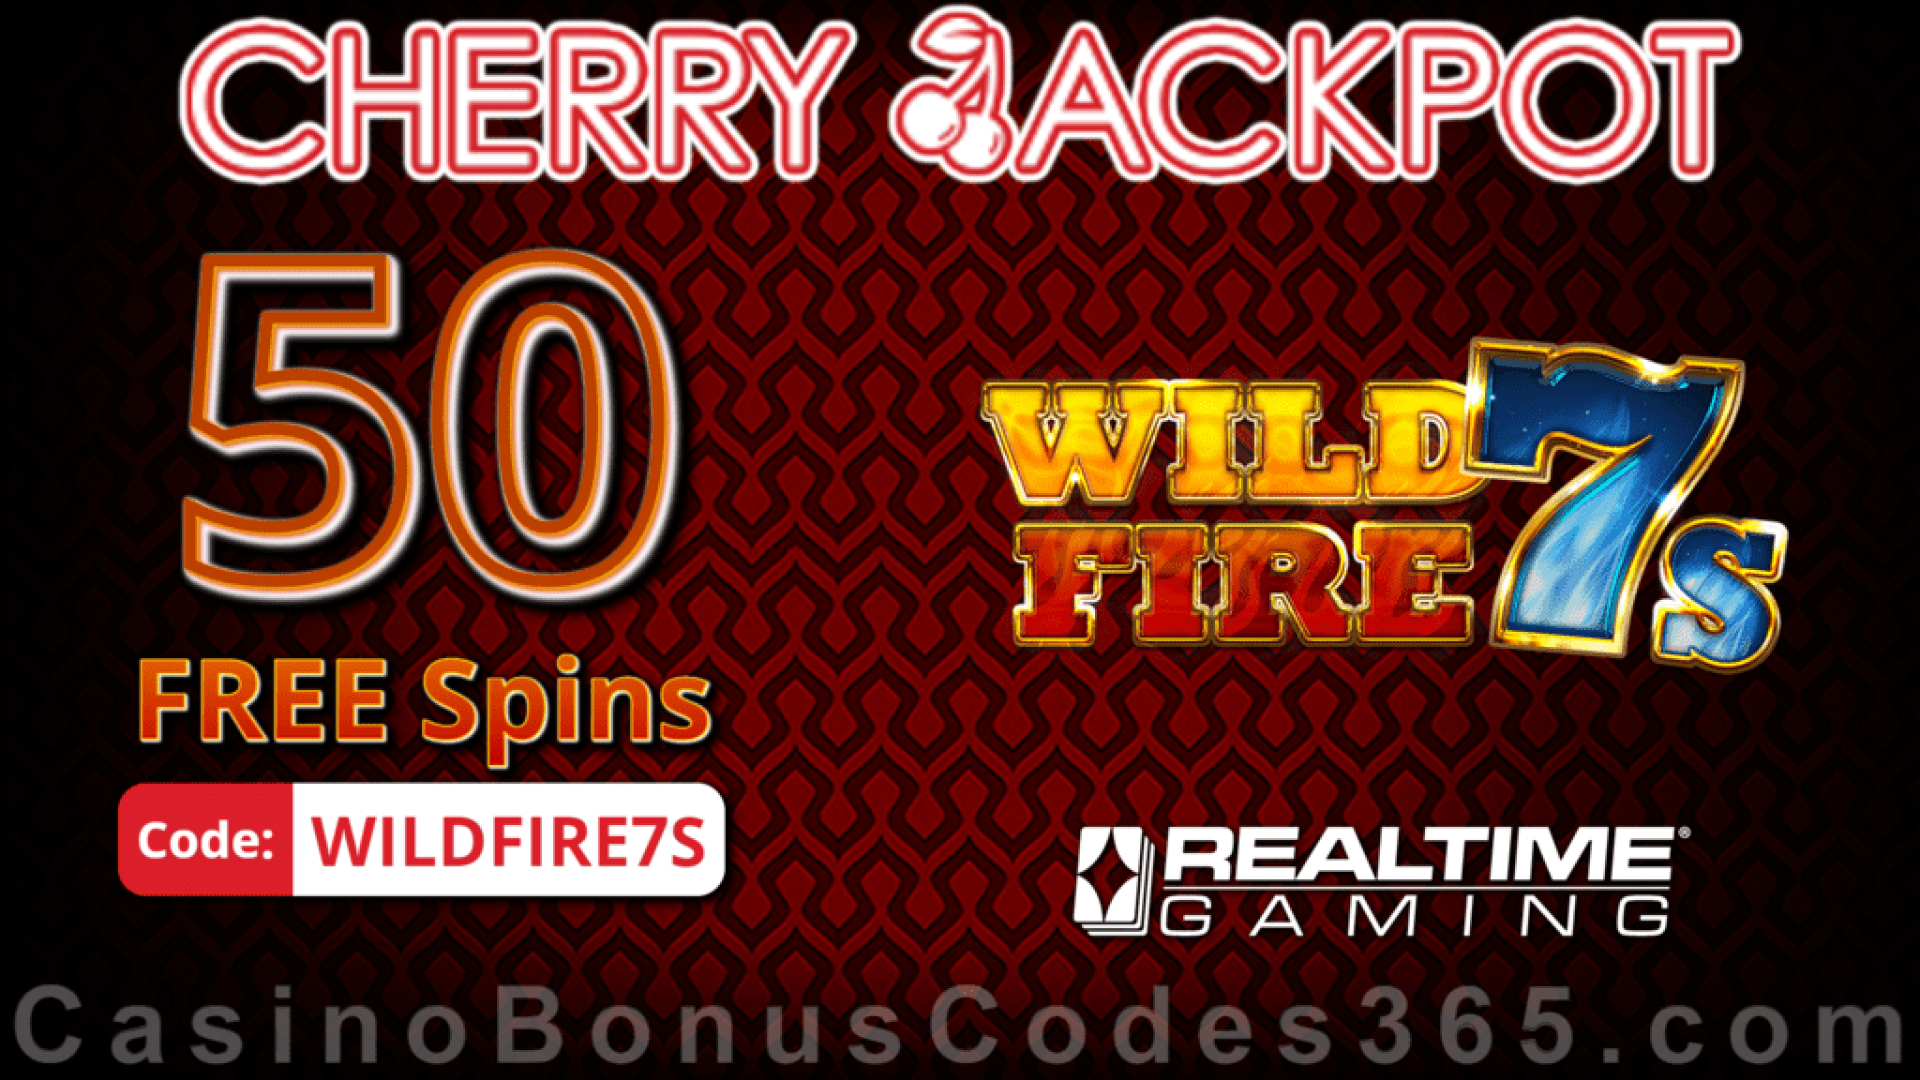 Cherry Jackpot 50 FREE Spins on Wild Fire 7s New RTG Game No Deposit Special Deal